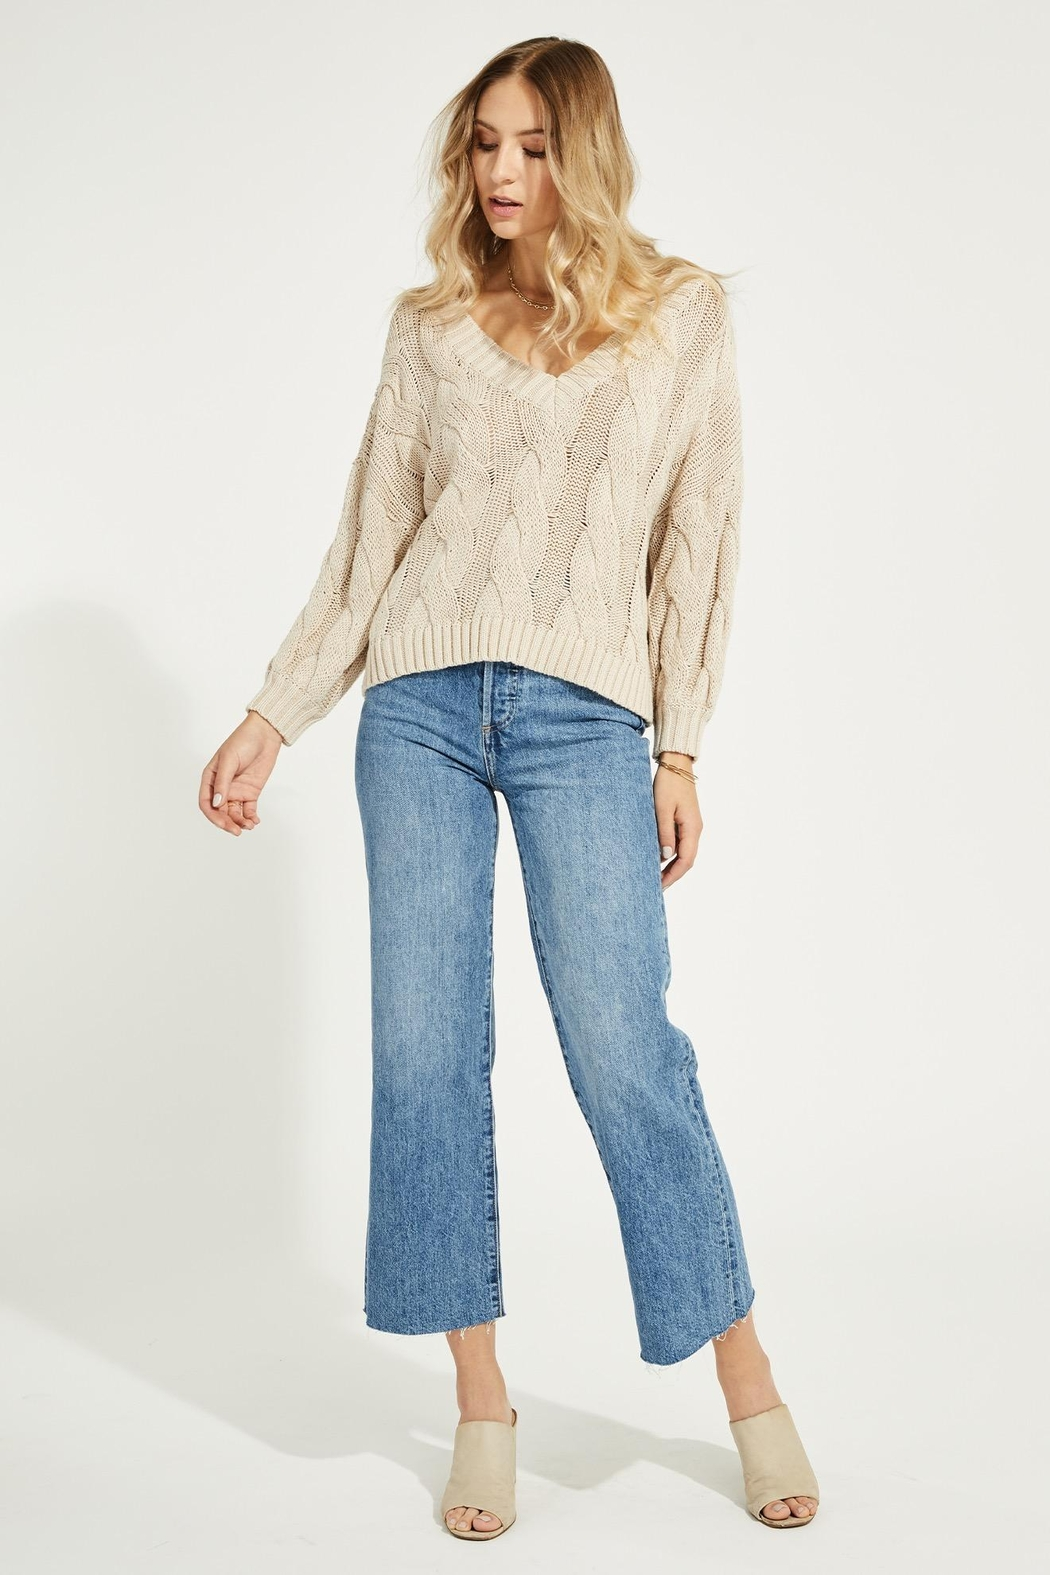 Gentle Fawn Heritage Cotton Sweater - Main Image